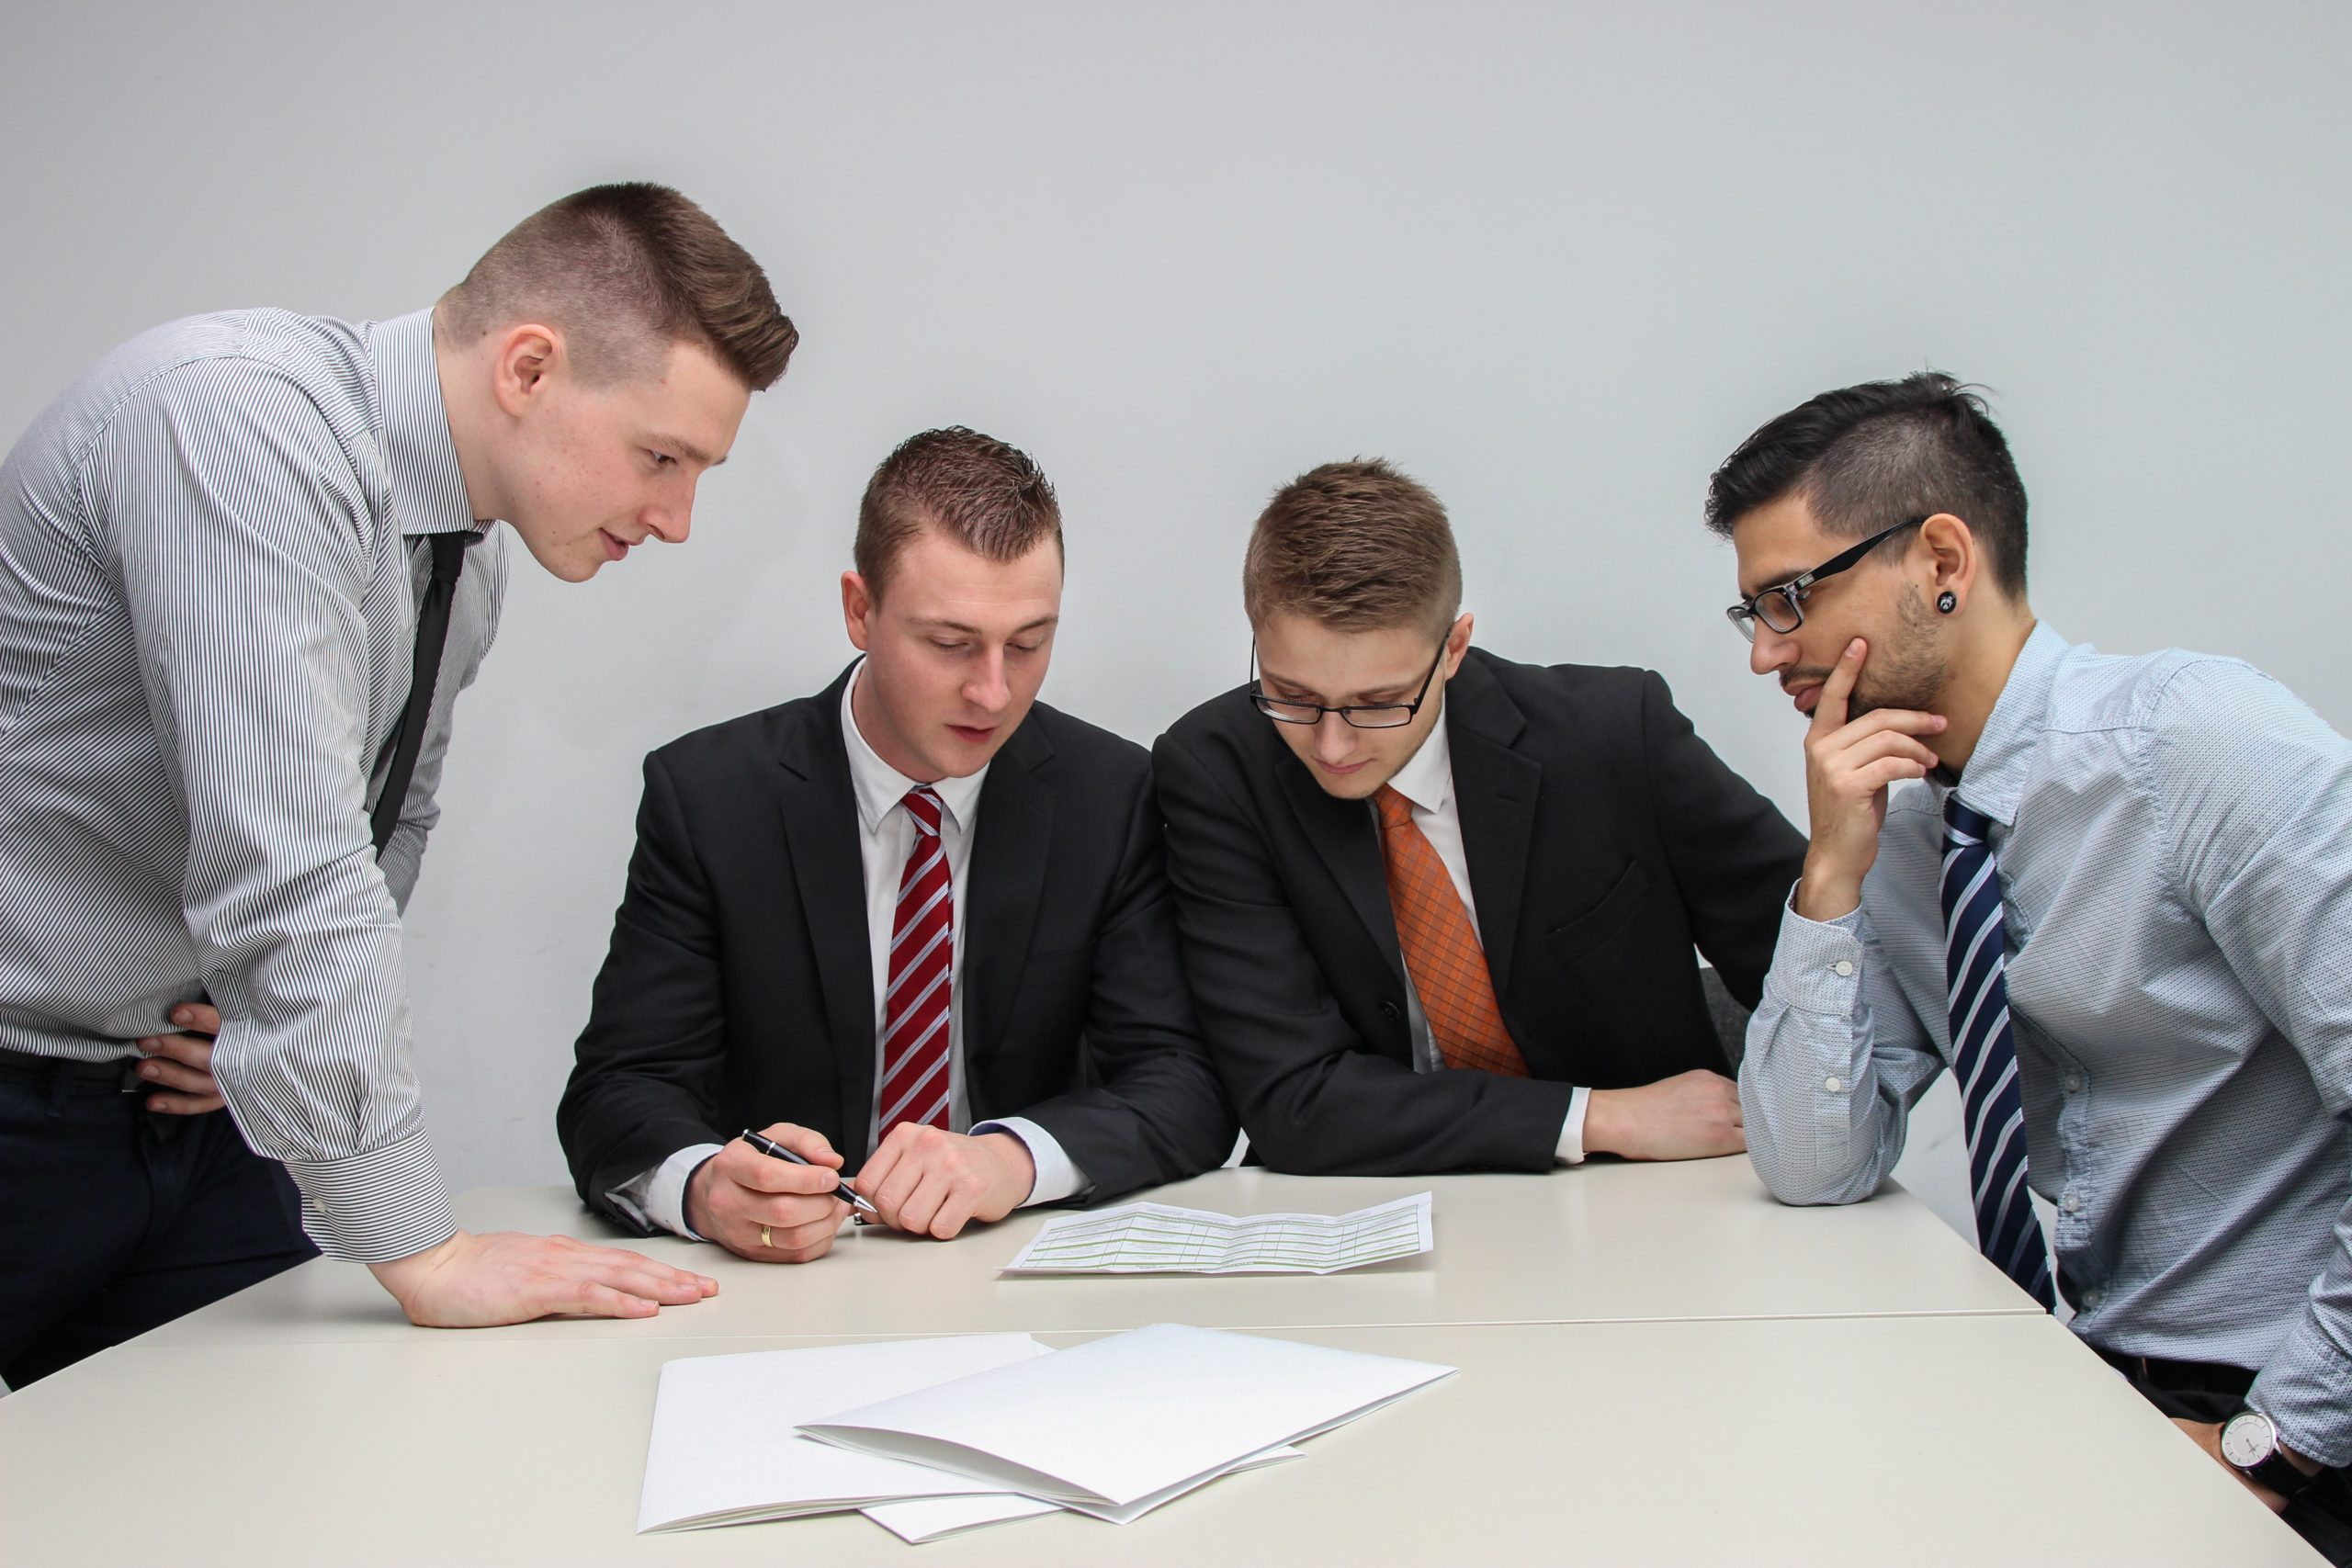 What does a compliance interview mean?